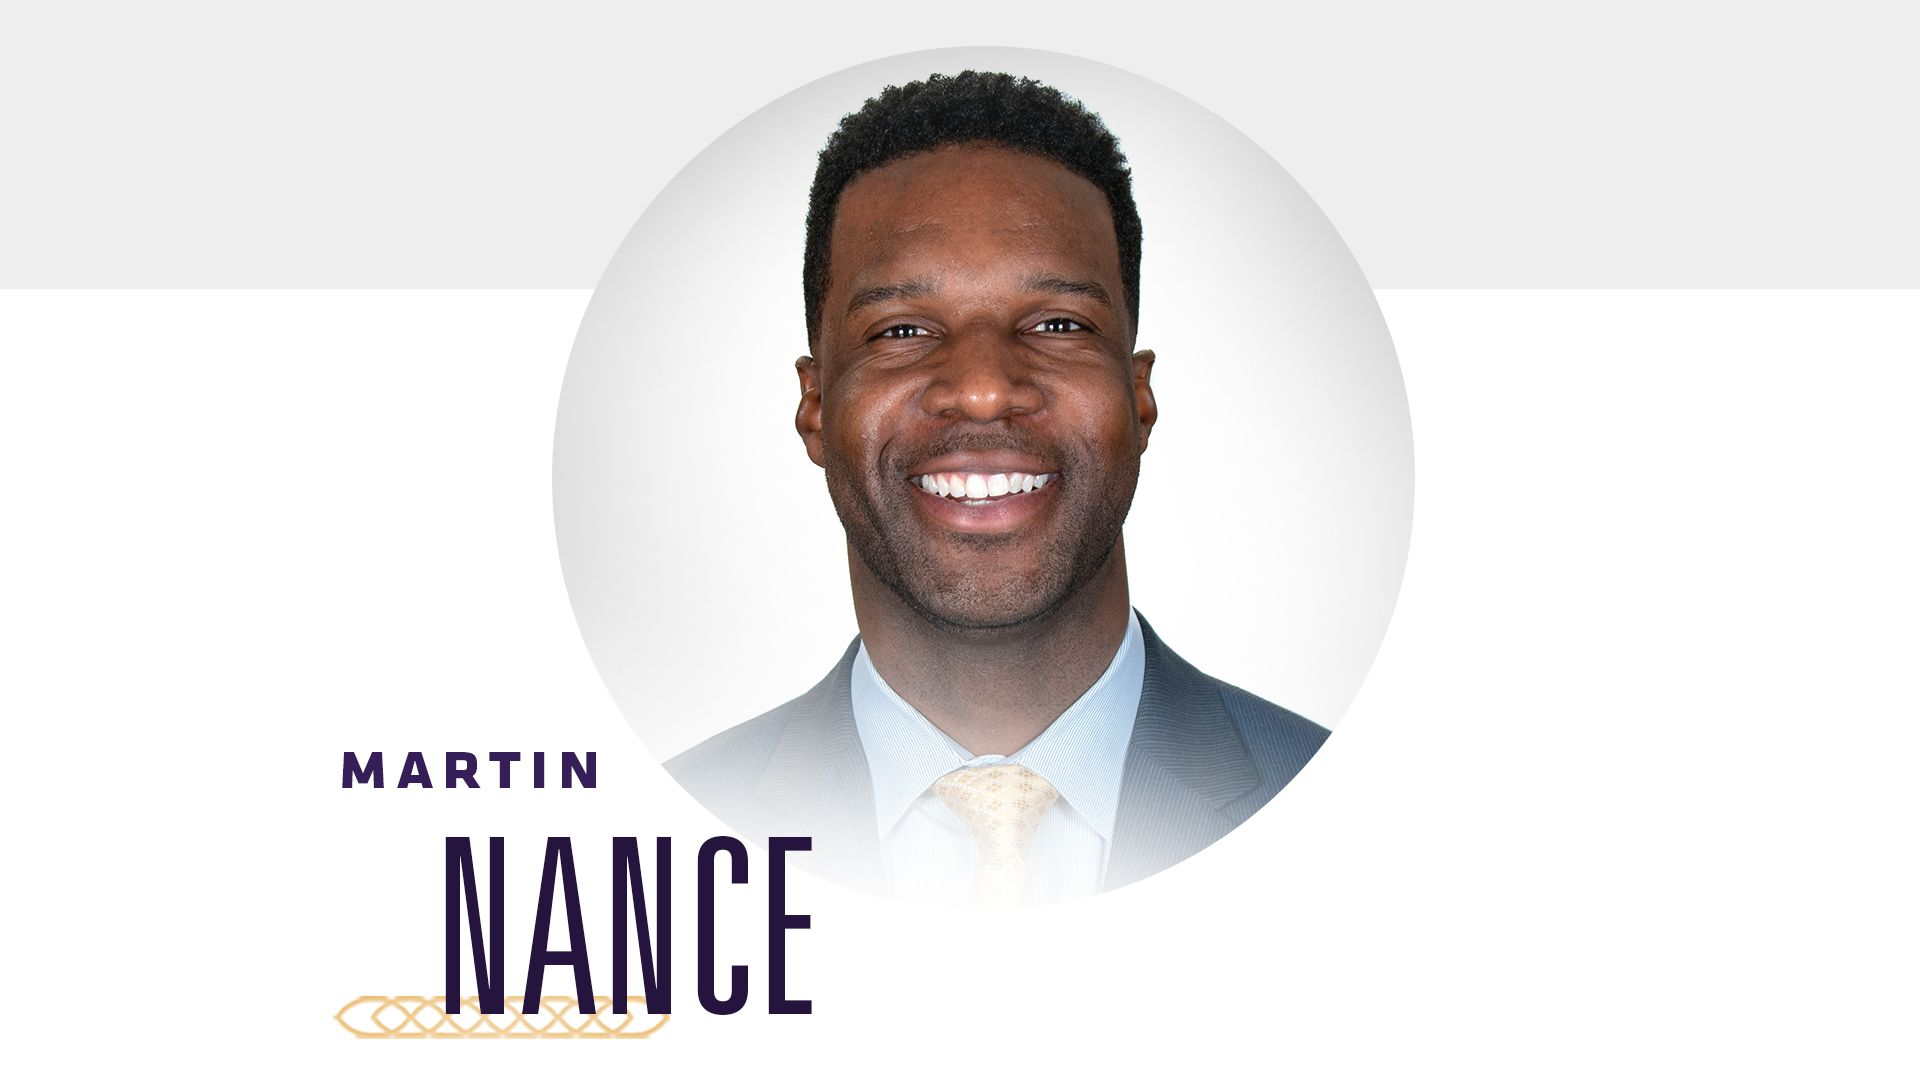 Martin Nance – Executive Vice President & Chief Marketing Officer, Minnesota Vikings